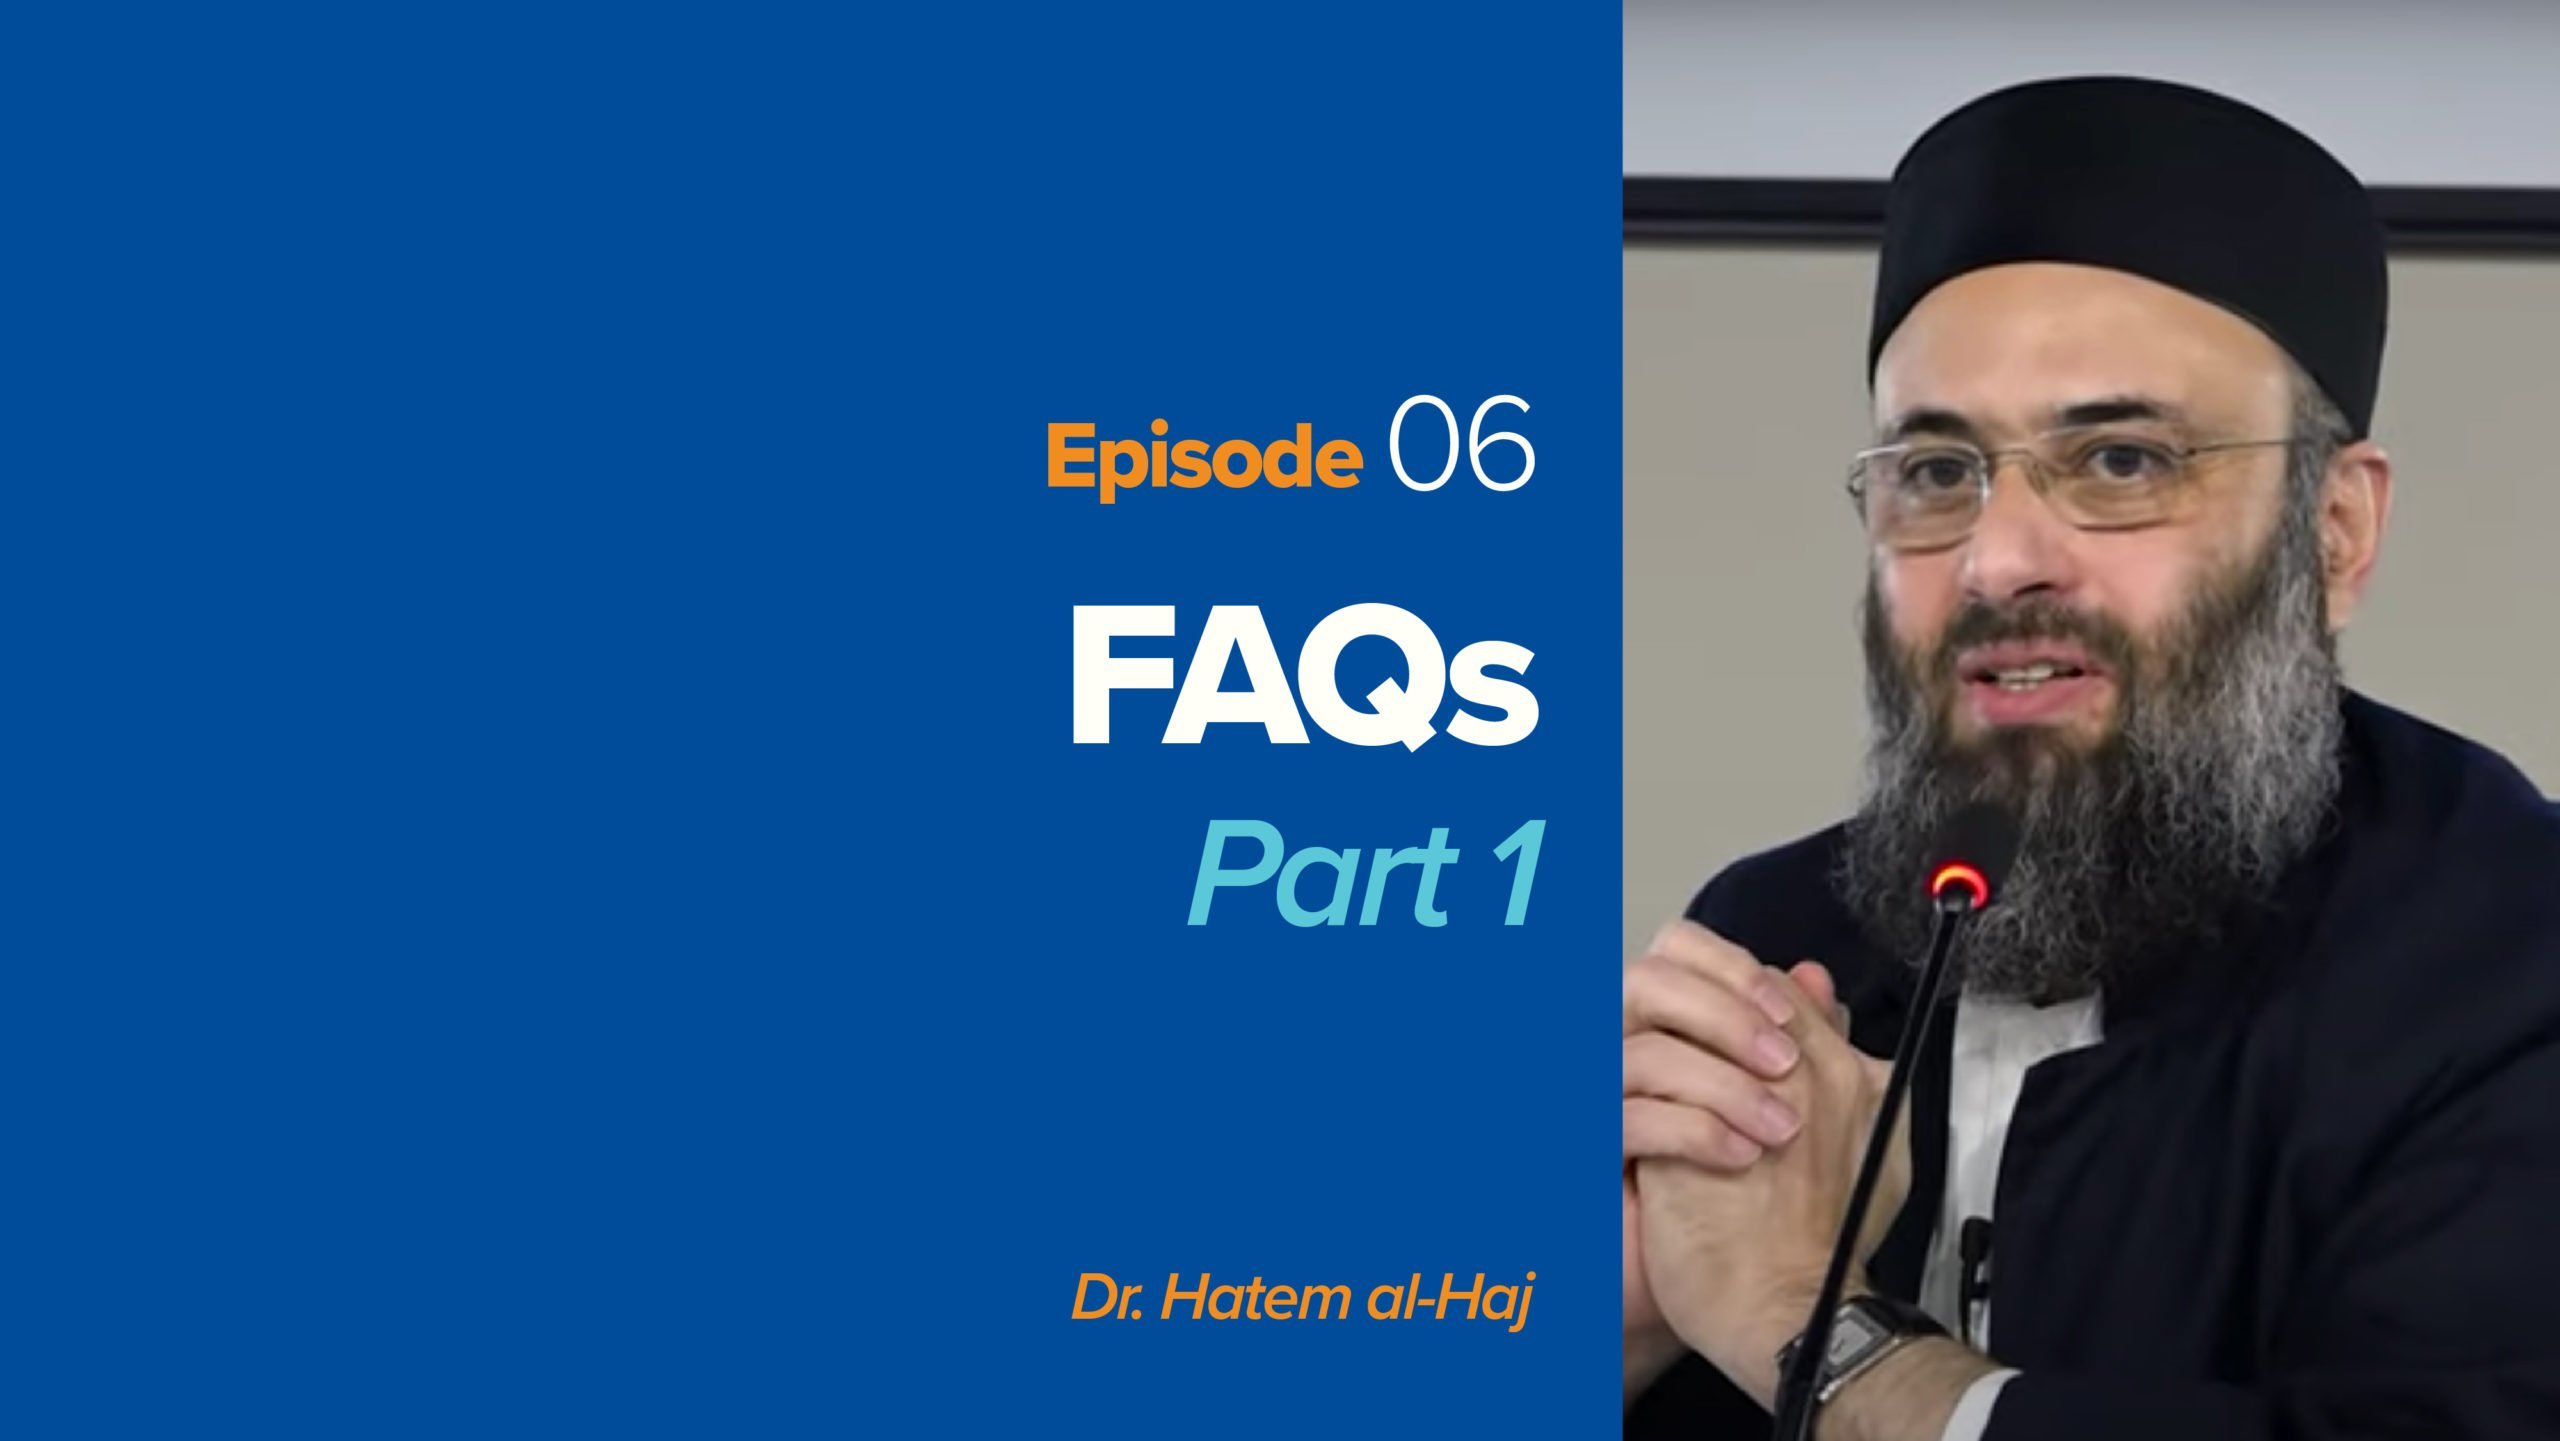 FAQs with Islamic Apologetics – Part 1